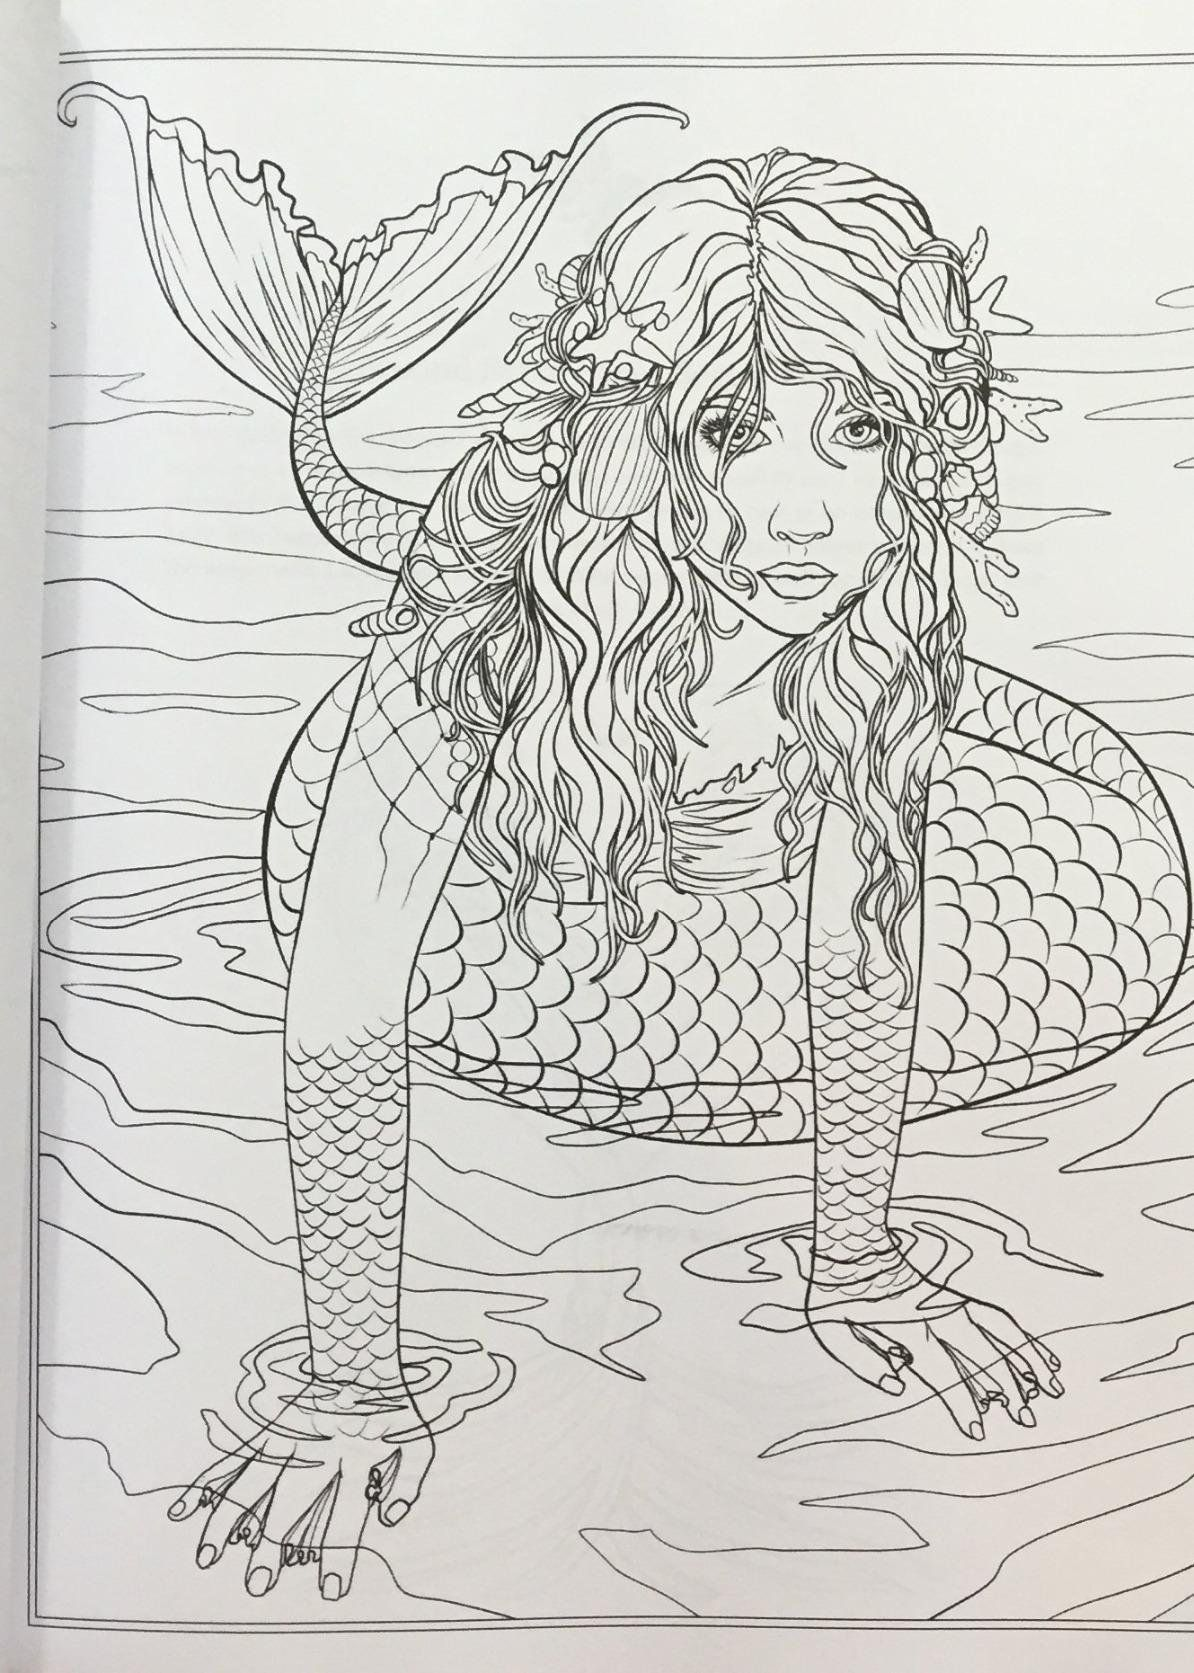 selina fenech coloring pages - mythical mermaids fantasy adult coloring book fantasy